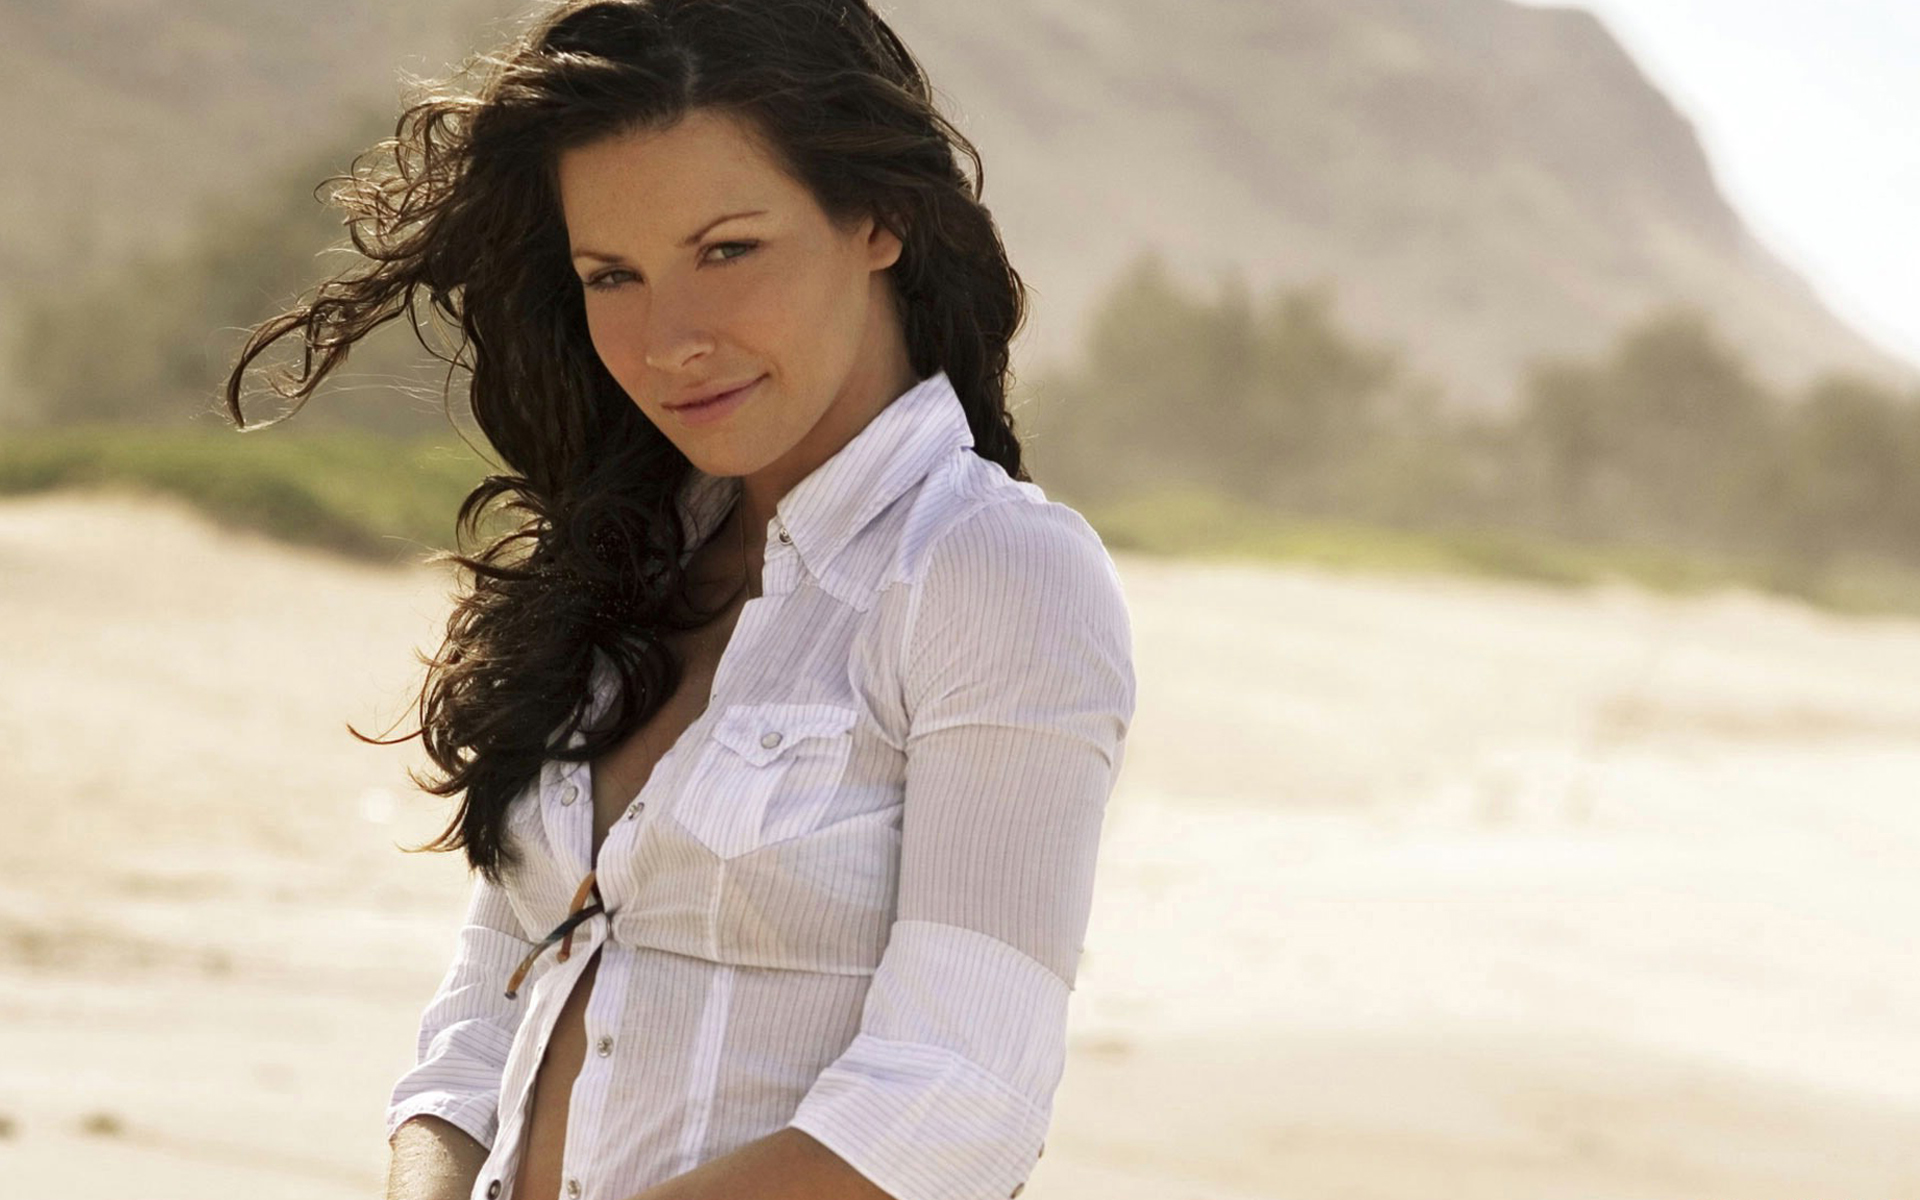 evangeline lilly girls beach papers background wallpapers 1920x1200